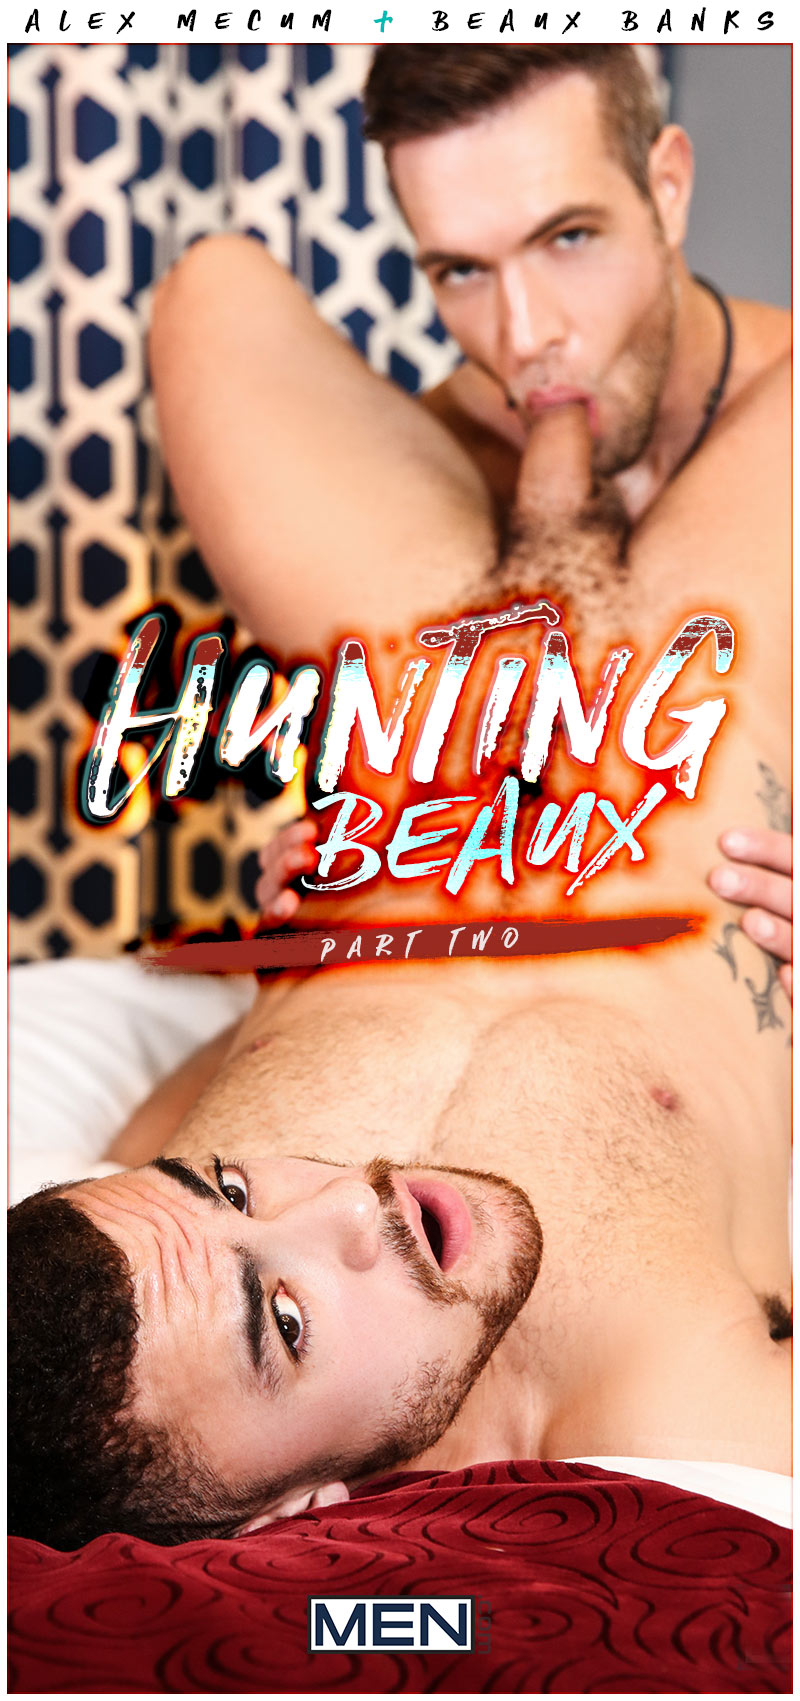 Hunting Beaux, Part 2 (Alex Mecum Fucks Beaux Banks) at Drill My Hole